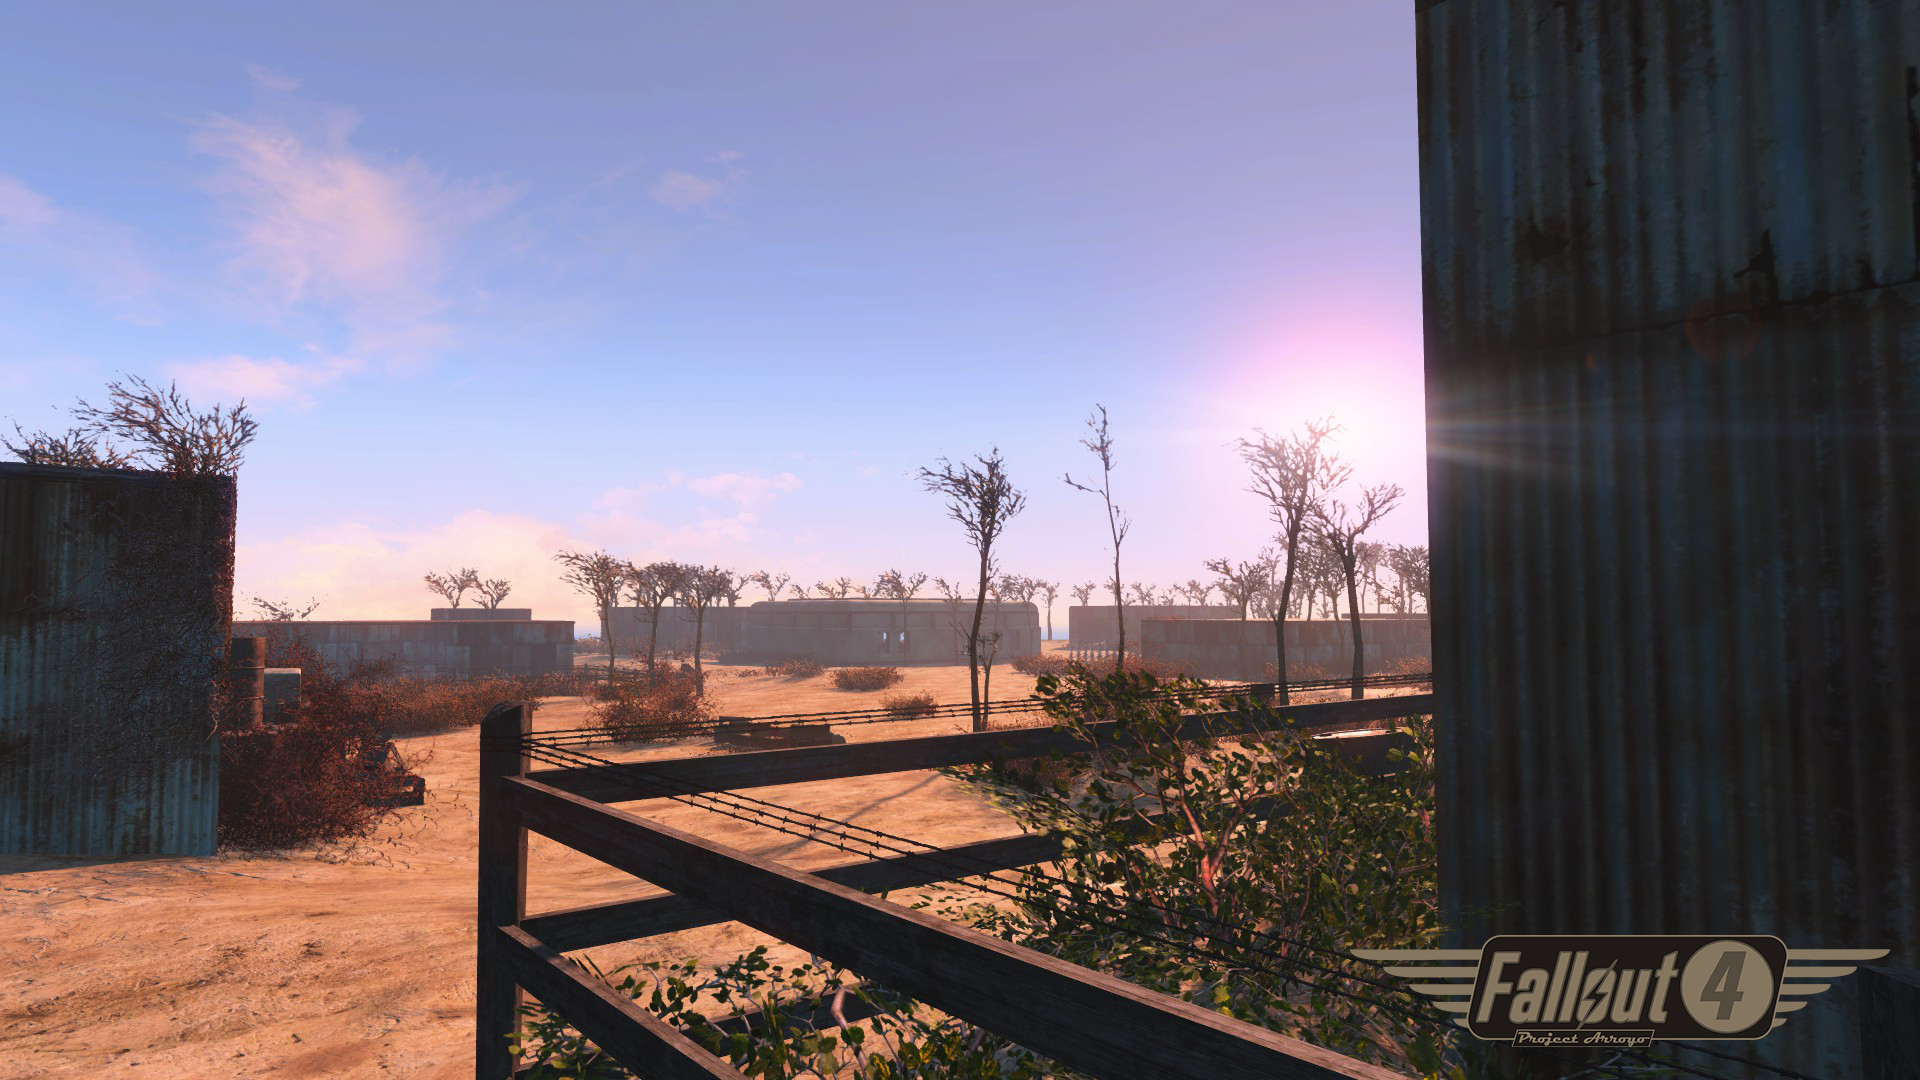 Fallout 4 Fallout 2 Remaster Mod 'Project Arroyo' in the